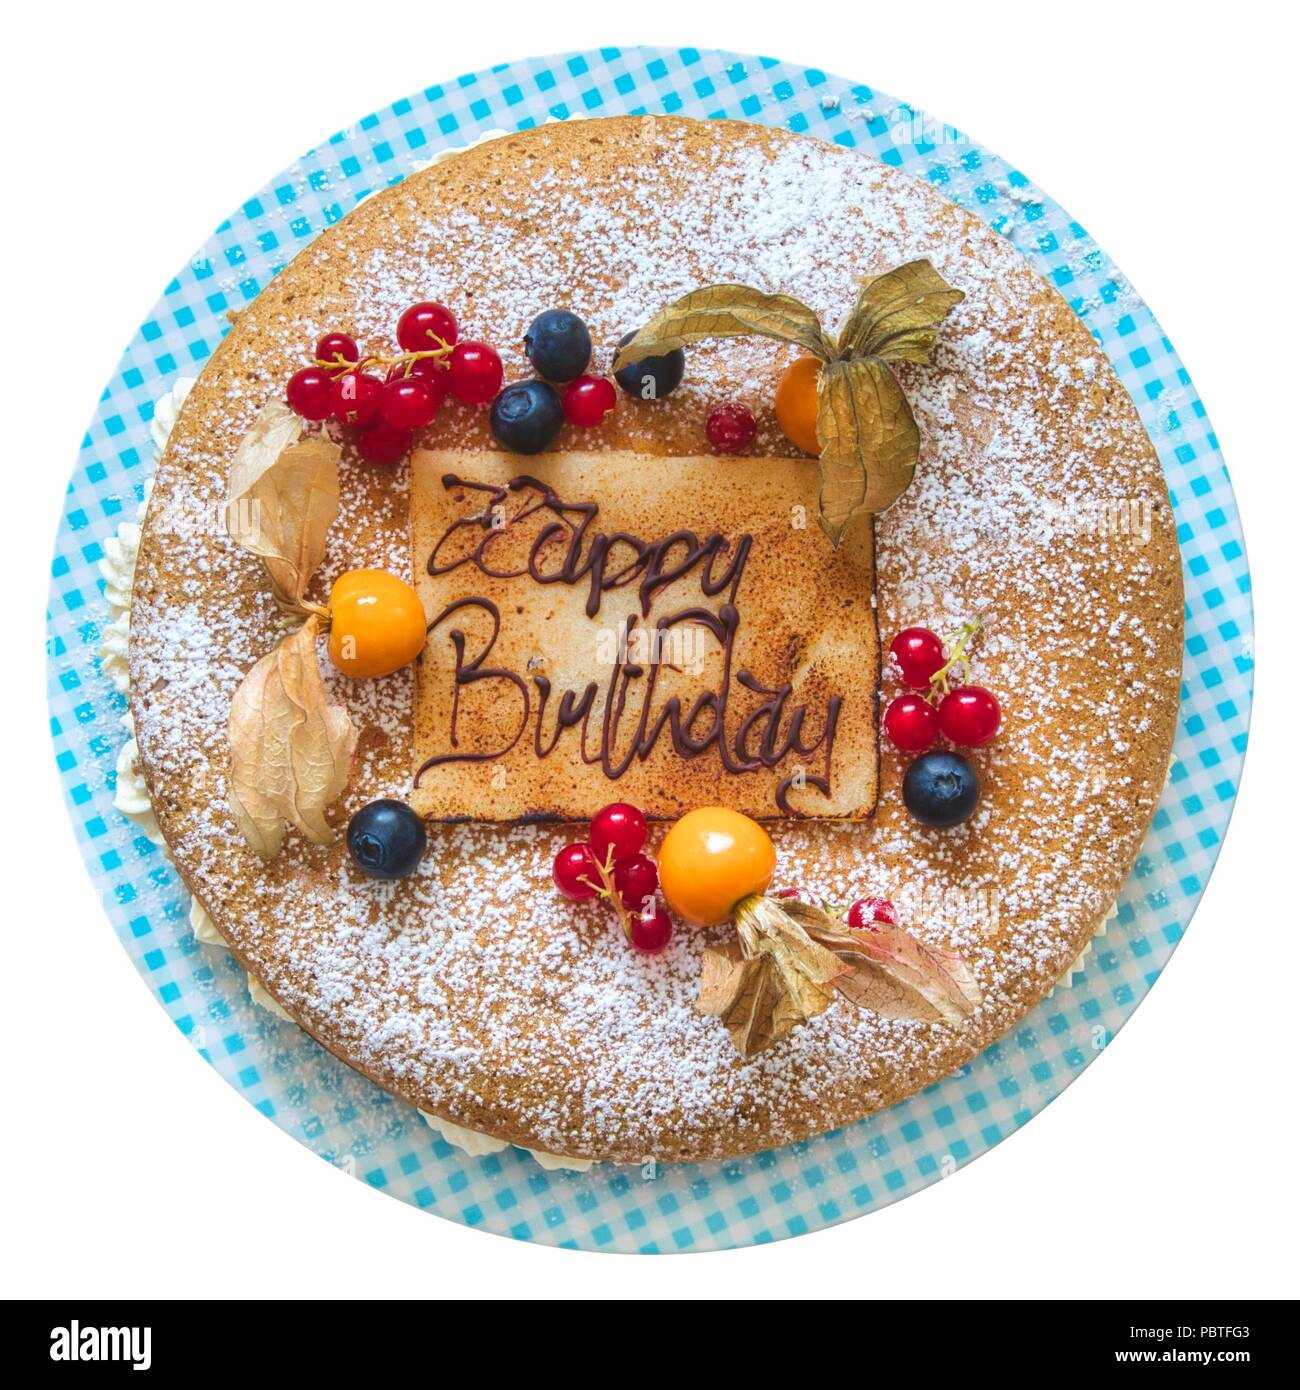 Pleasant Birthday Cake Sponge With Frosting Filling And Decorated With Personalised Birthday Cards Veneteletsinfo